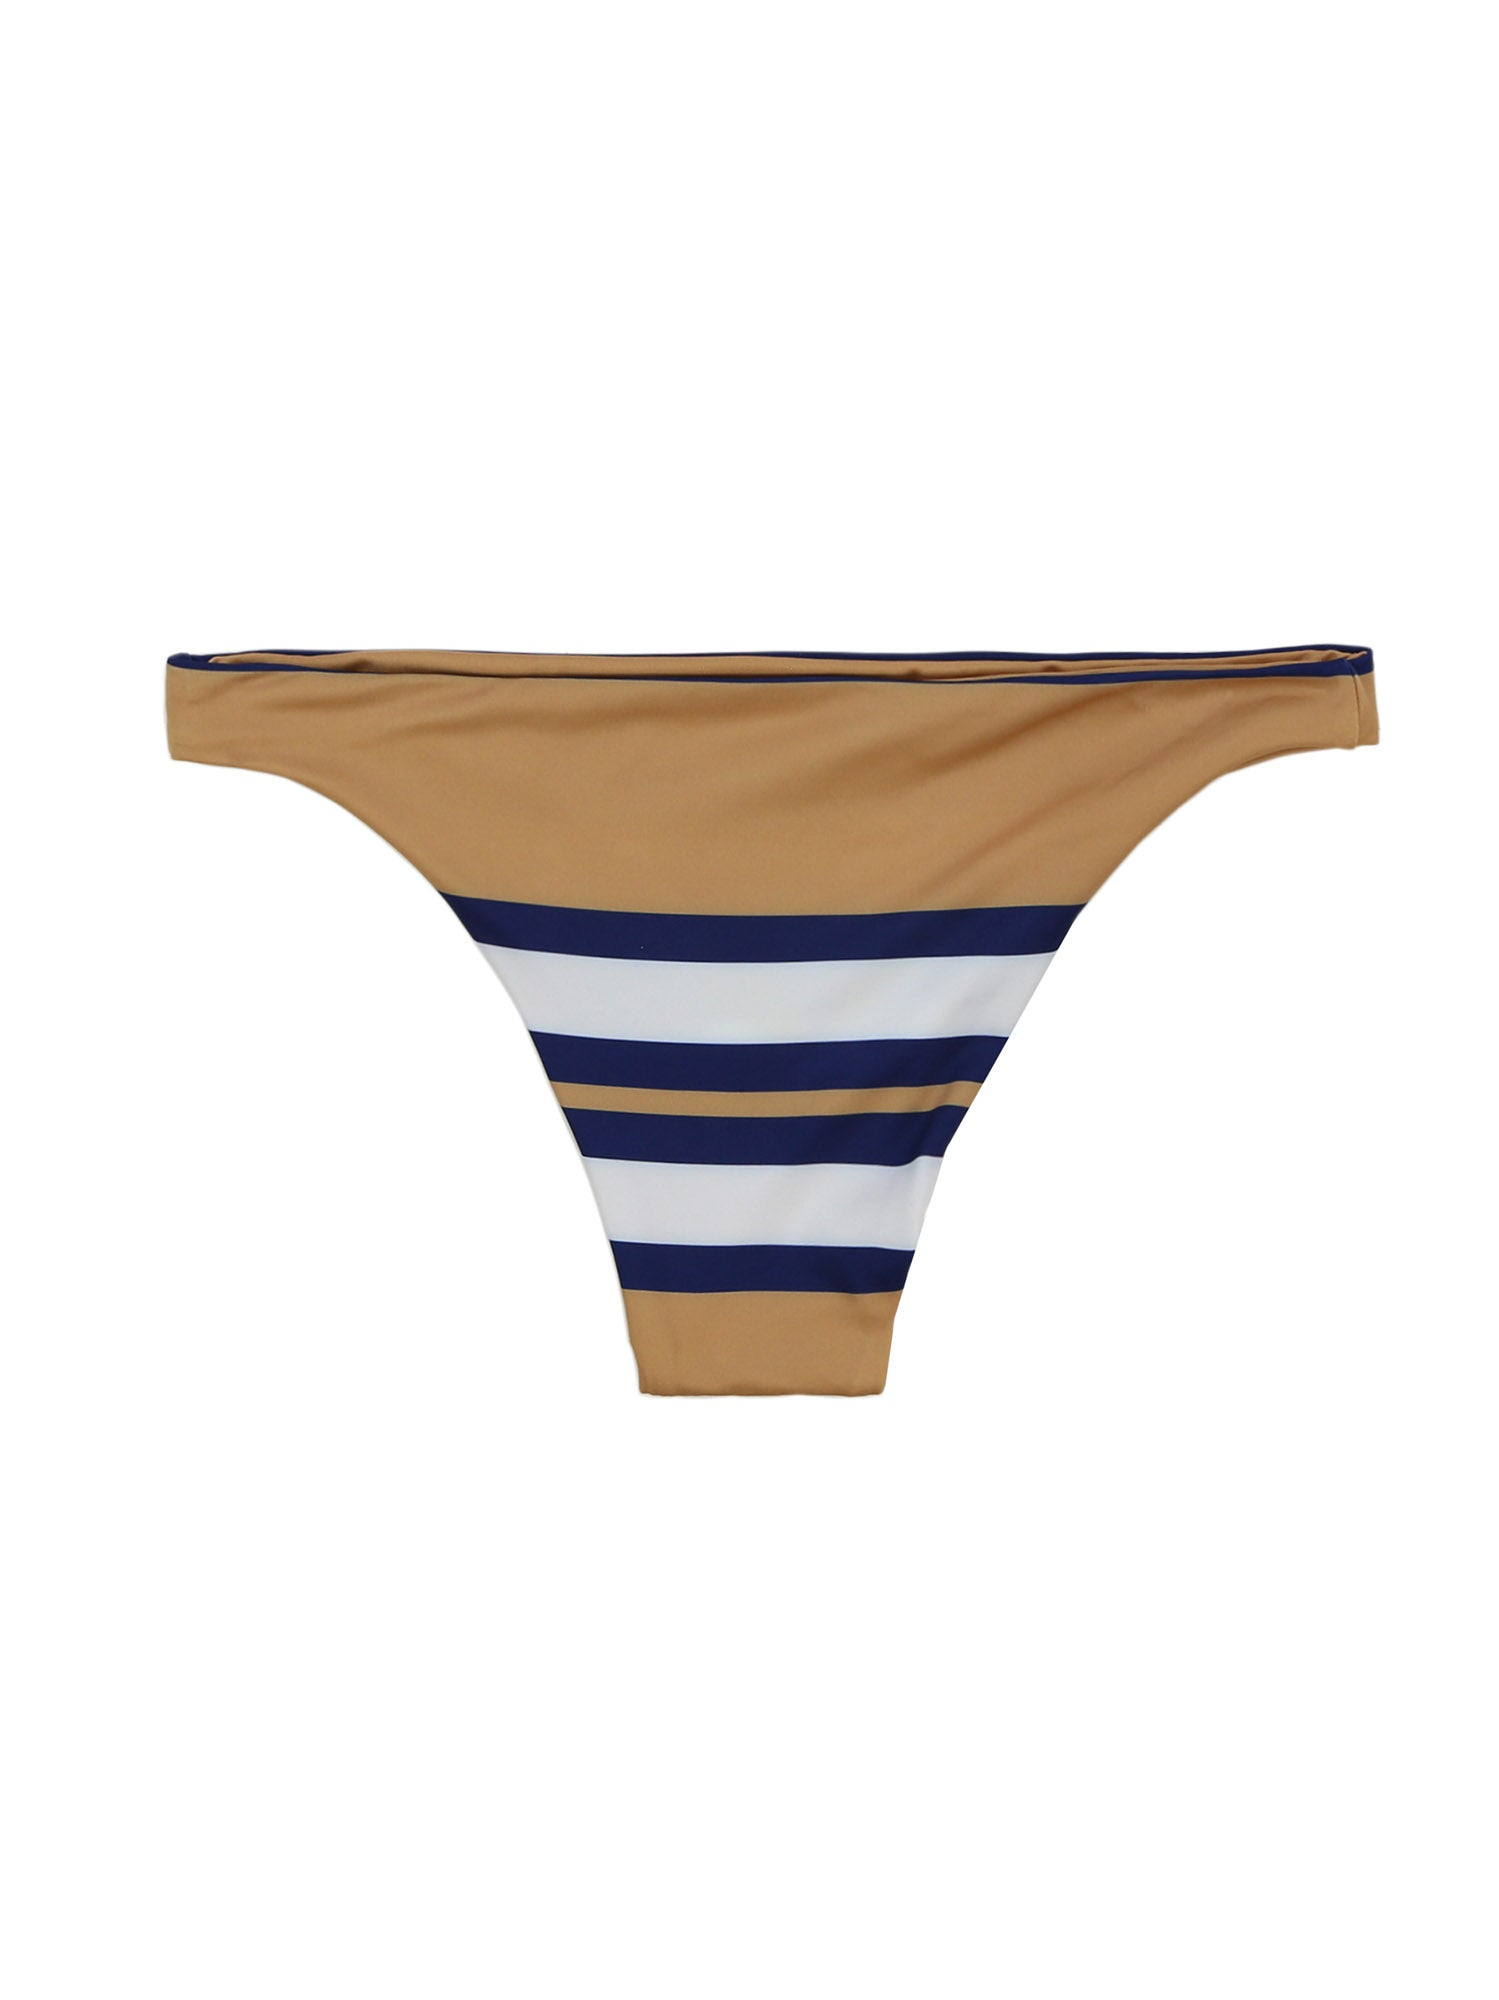 BRIEFBOTTOM(SANTORINISTRIPE)